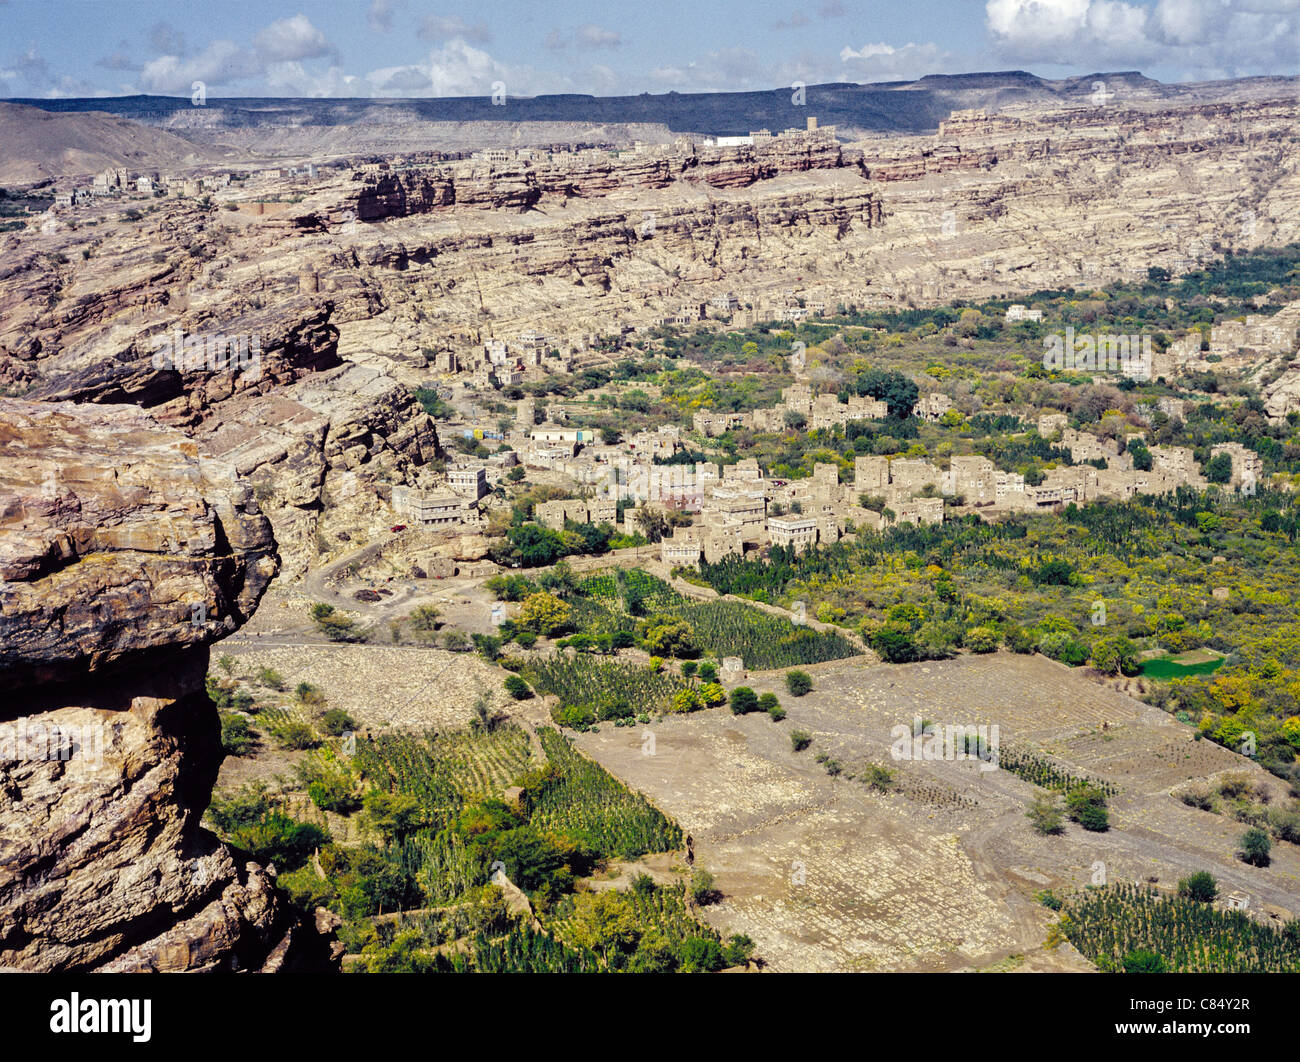 Scenic view of croplands in the valley of Wadi Dhar and hilltop village on the rim of the mountains, Yemen - Stock Image